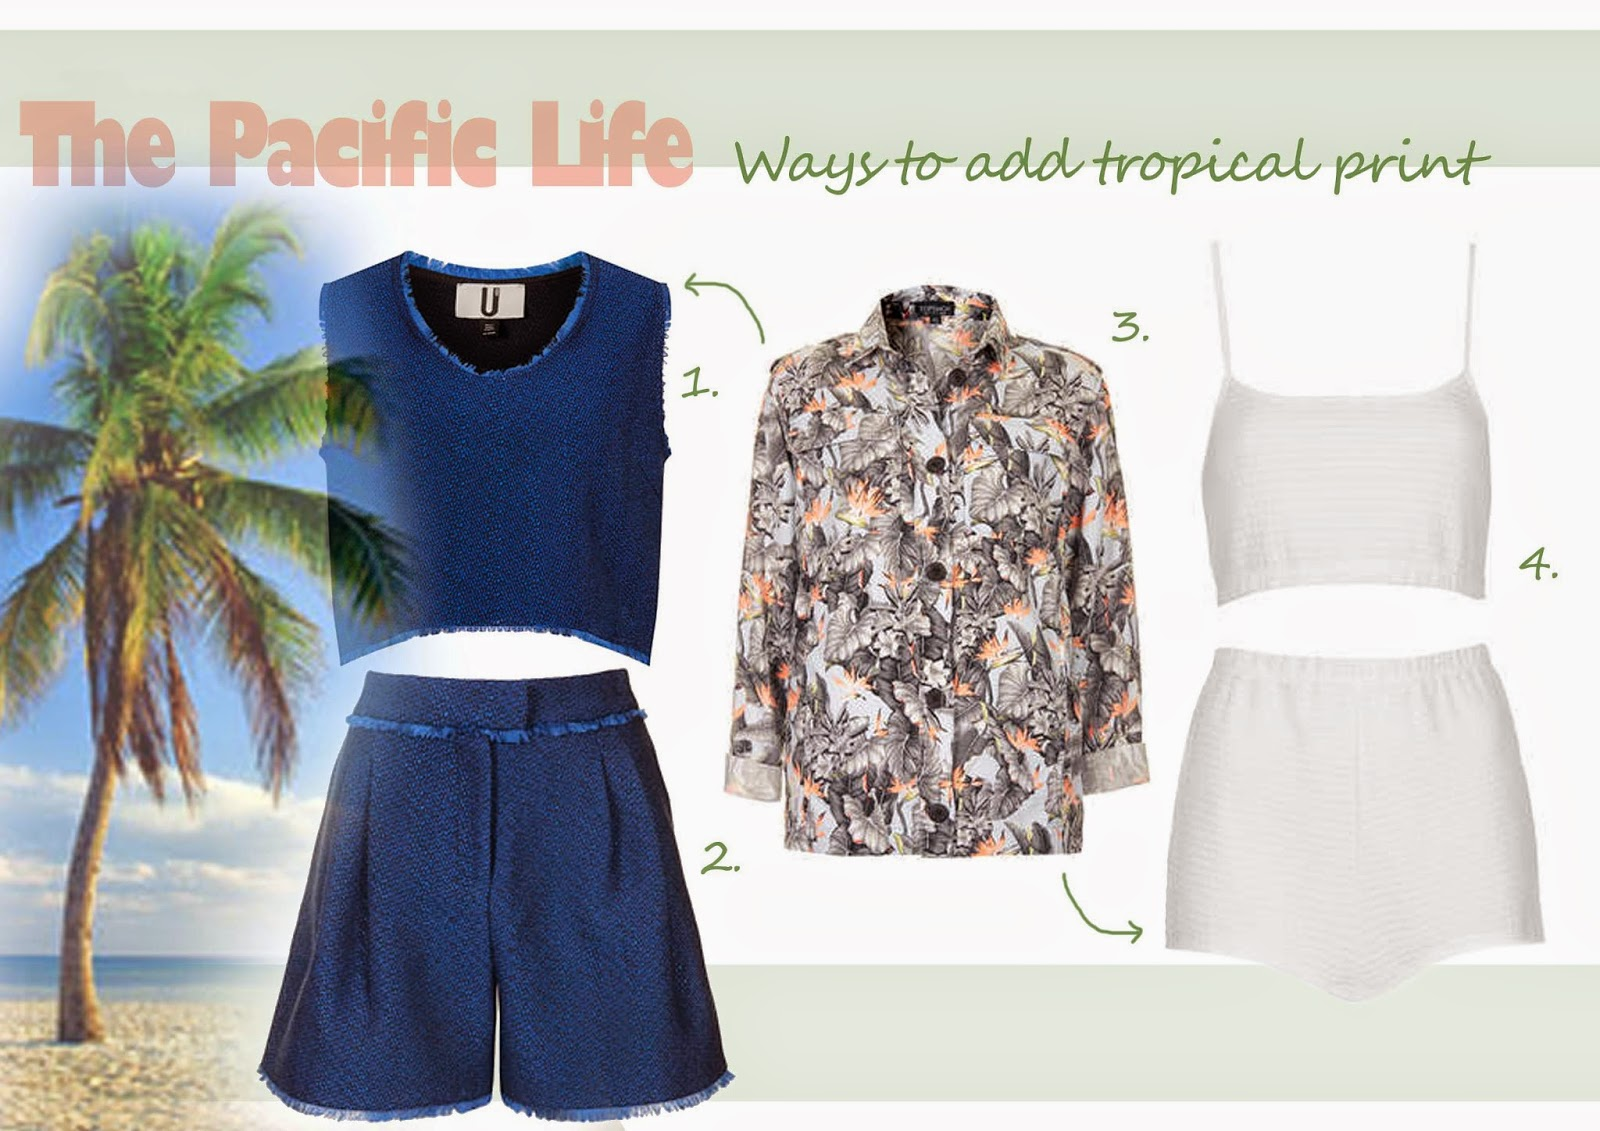 PACIFIC_LIFE_SUMMER_TREND_SHOP_2_APP